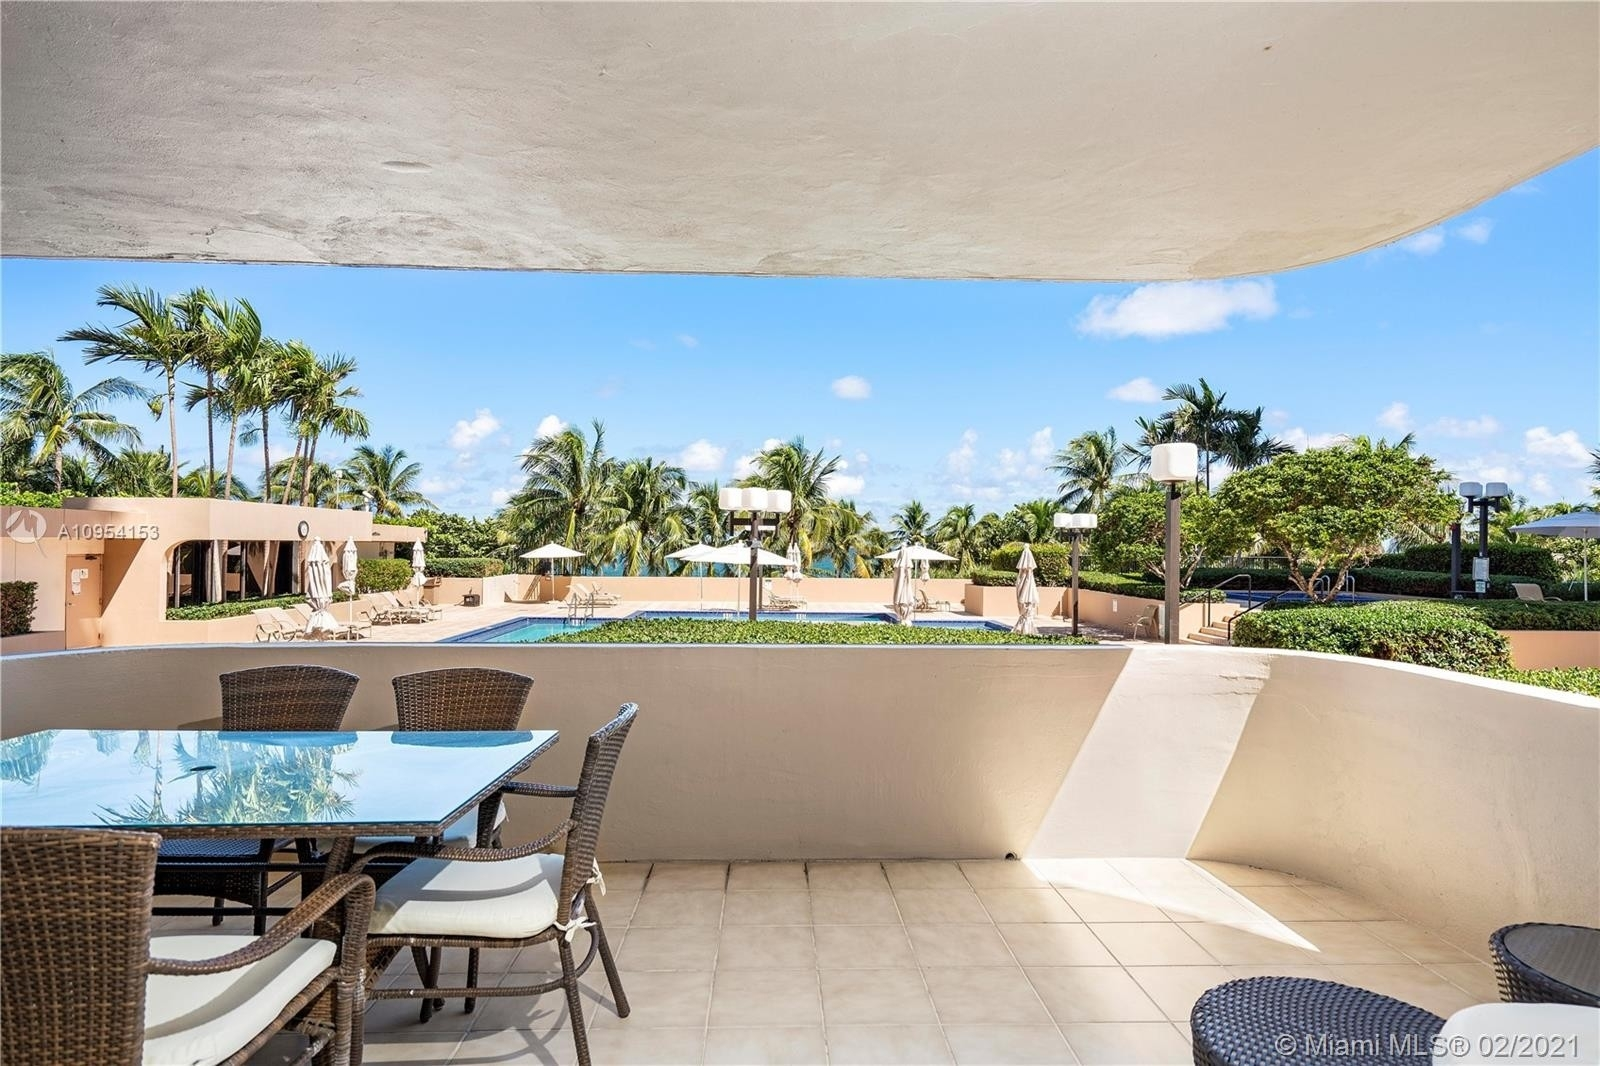 5. Condominiums for Sale at 10175 Collins Ave , 102 Bal Harbour, FL 33154